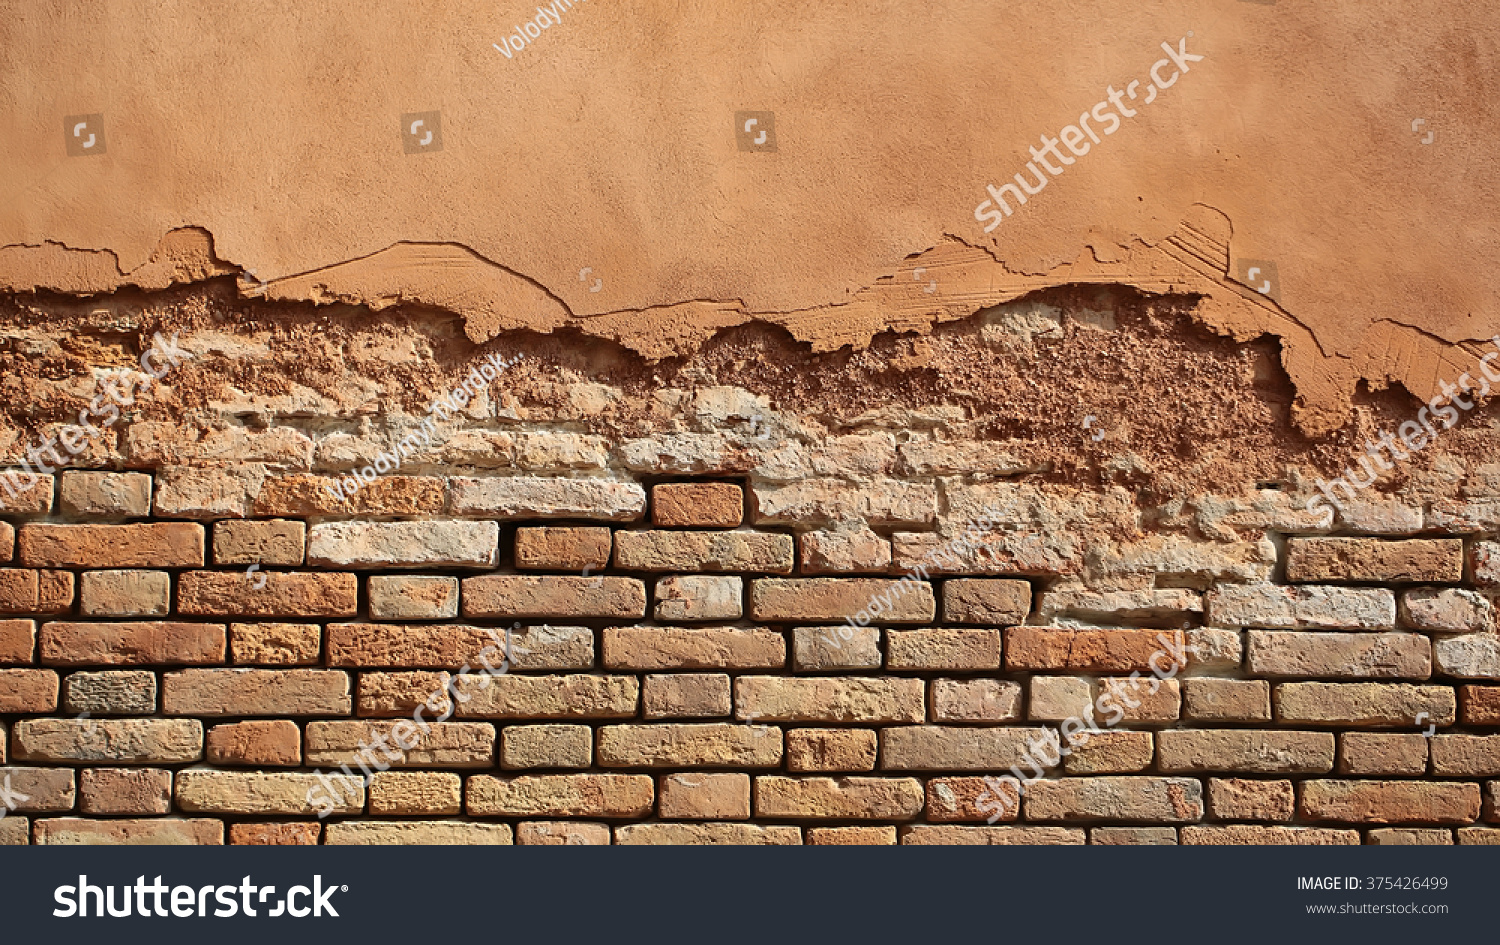 Photo Closeup Outdoor Aged Terracotta Clay Brick And Decorative Stucco Facade Wall Exterior